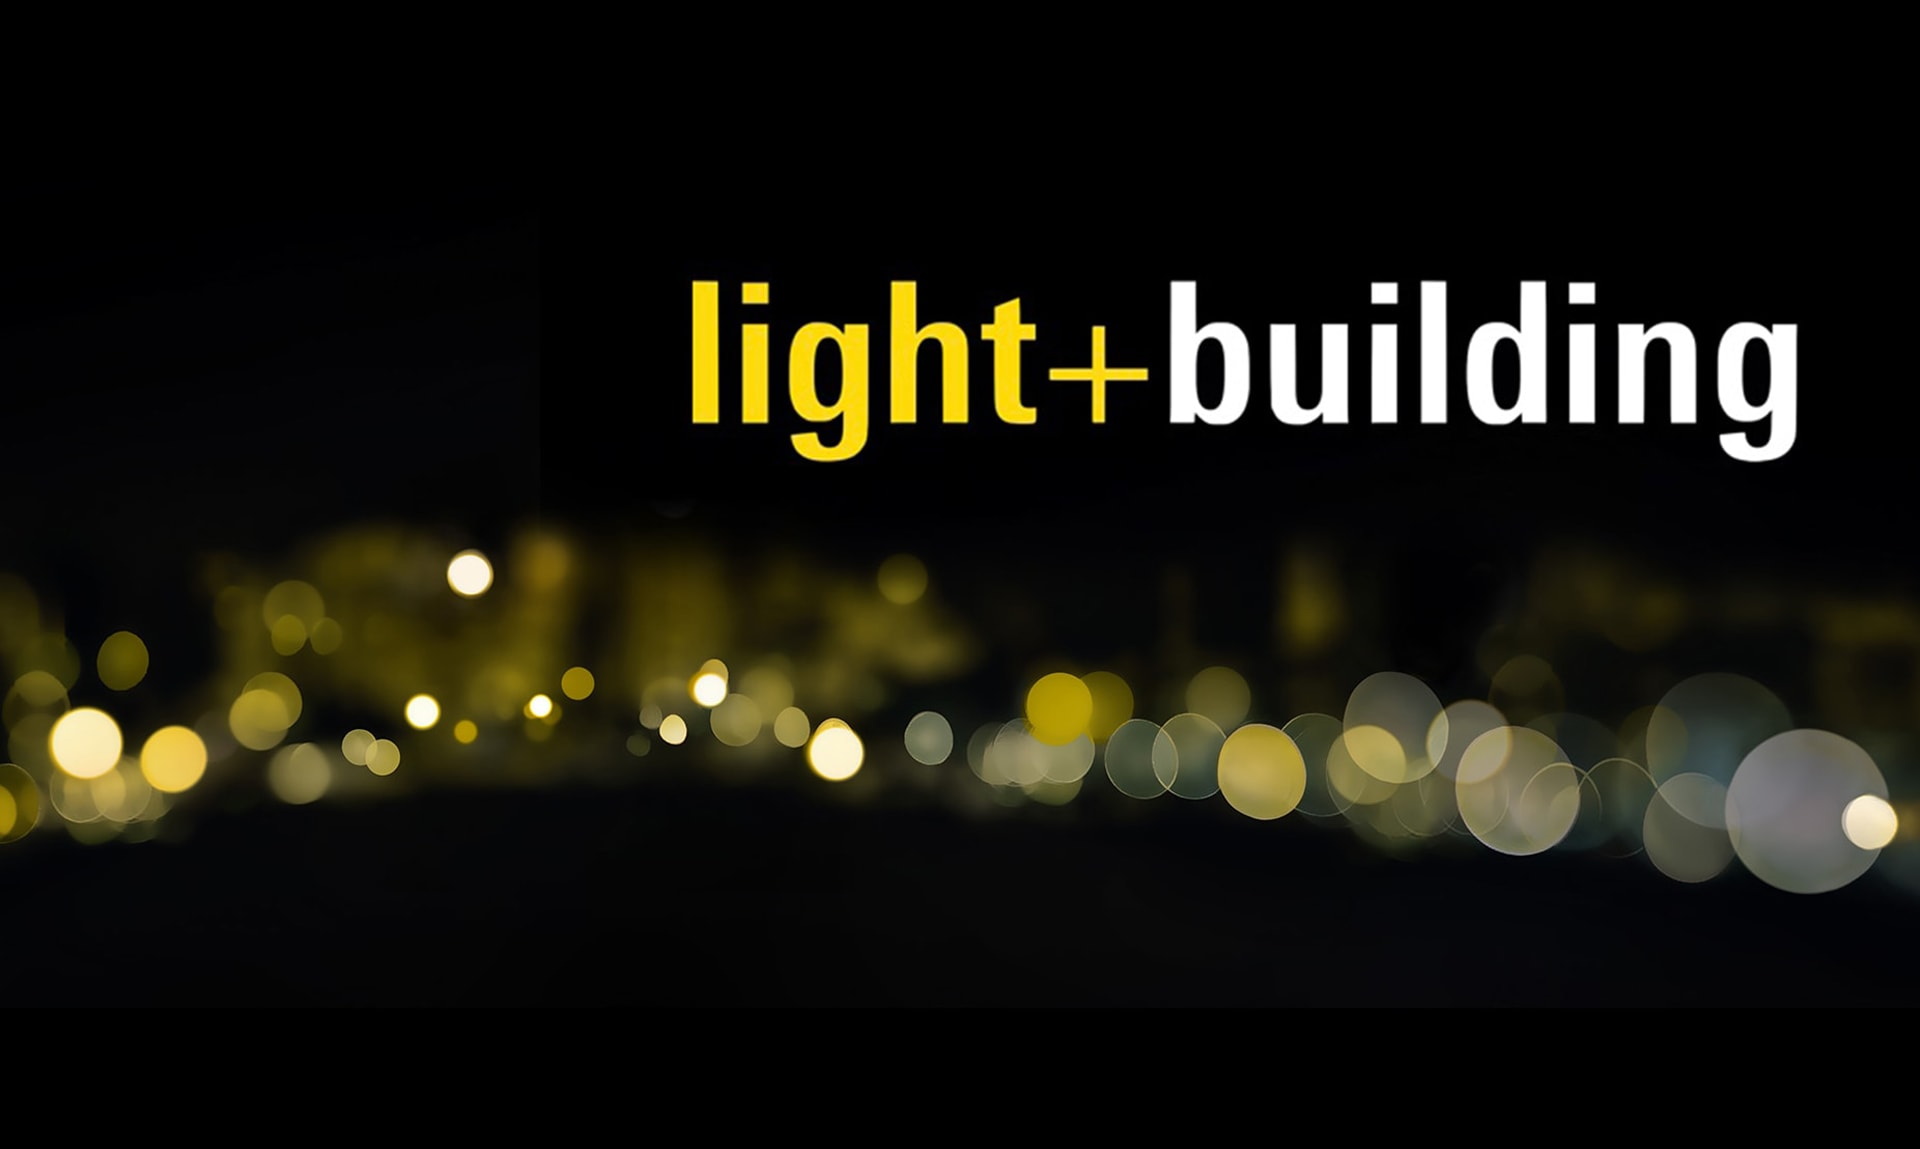 lighting-building-banner-min.jpg